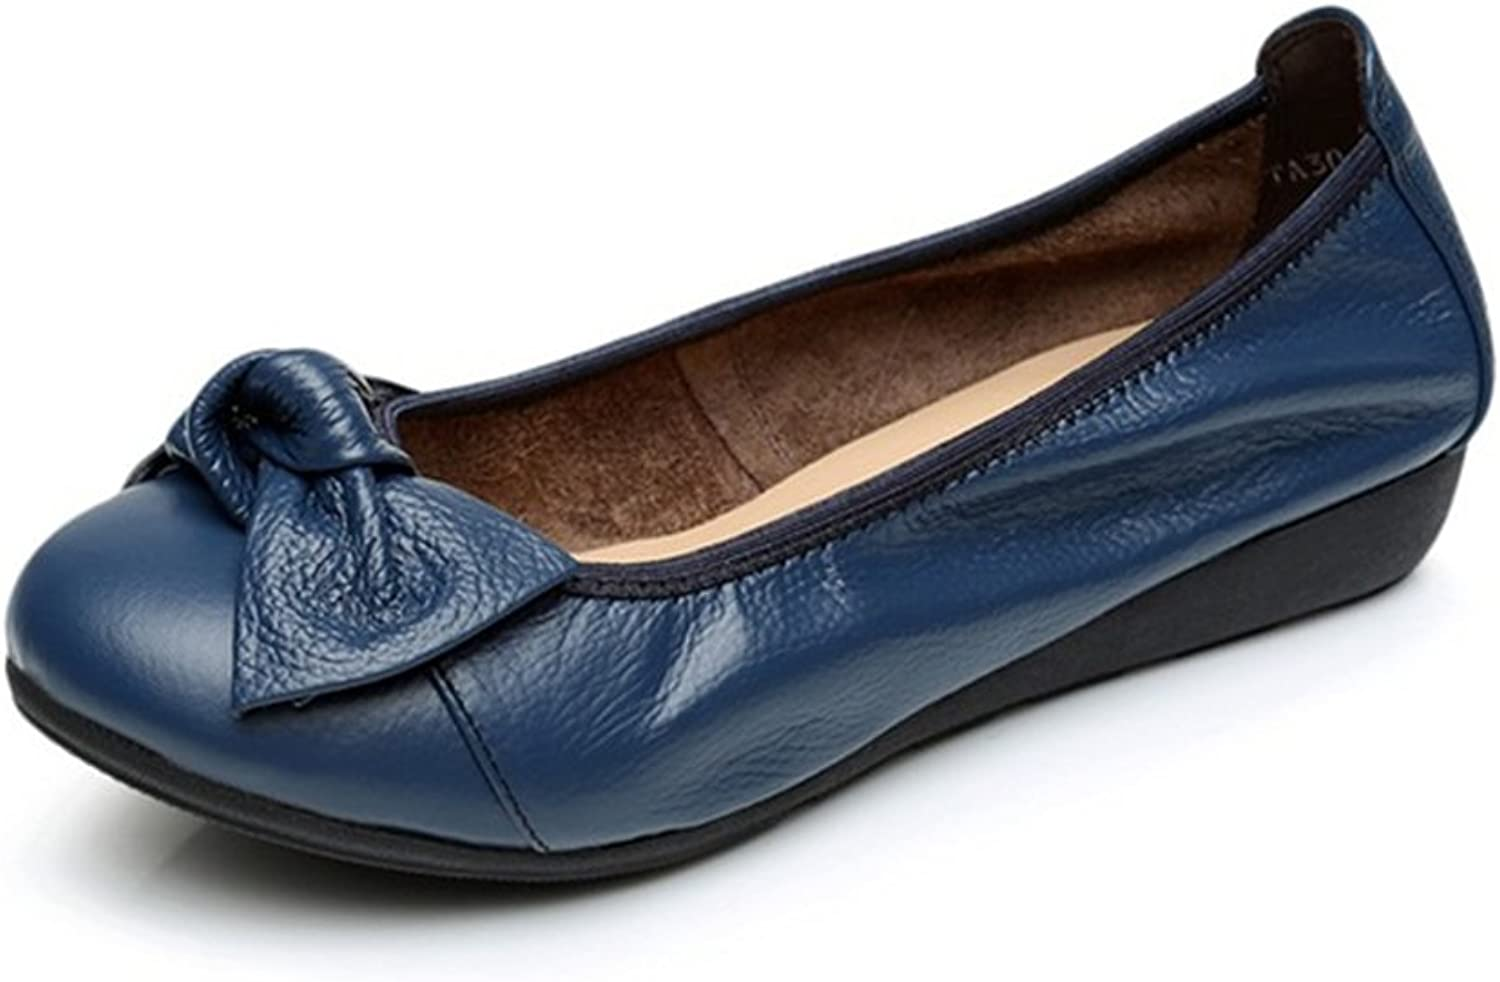 Women Ballet Flats, Fashion Bowknot Round Toe shoes, Casual Driving shoes